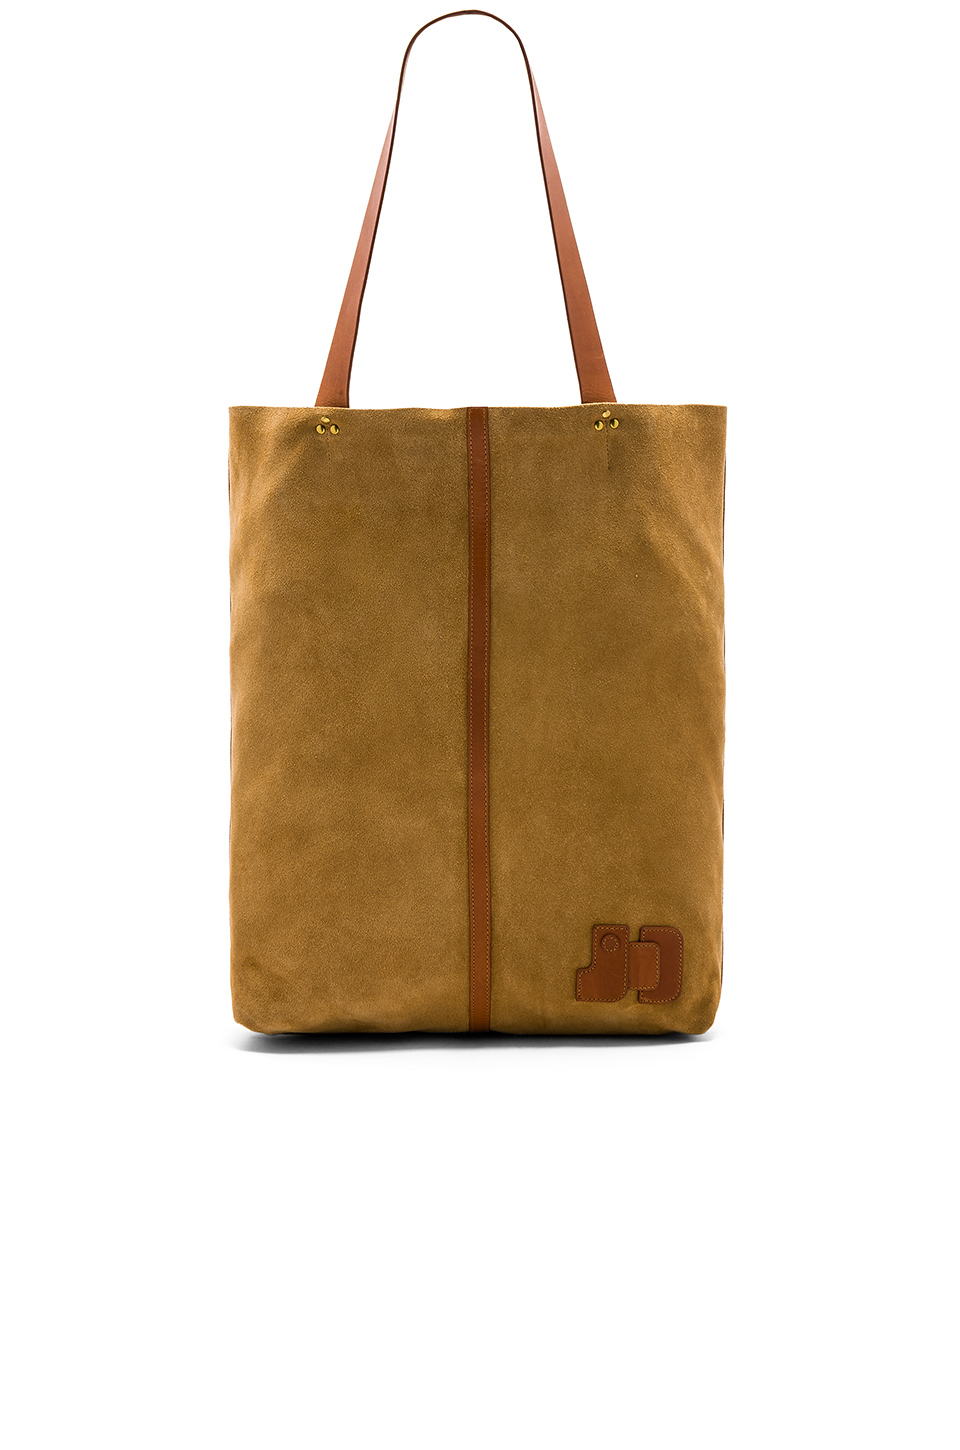 Jerome Dreyfuss Gilles Tote in Chamois